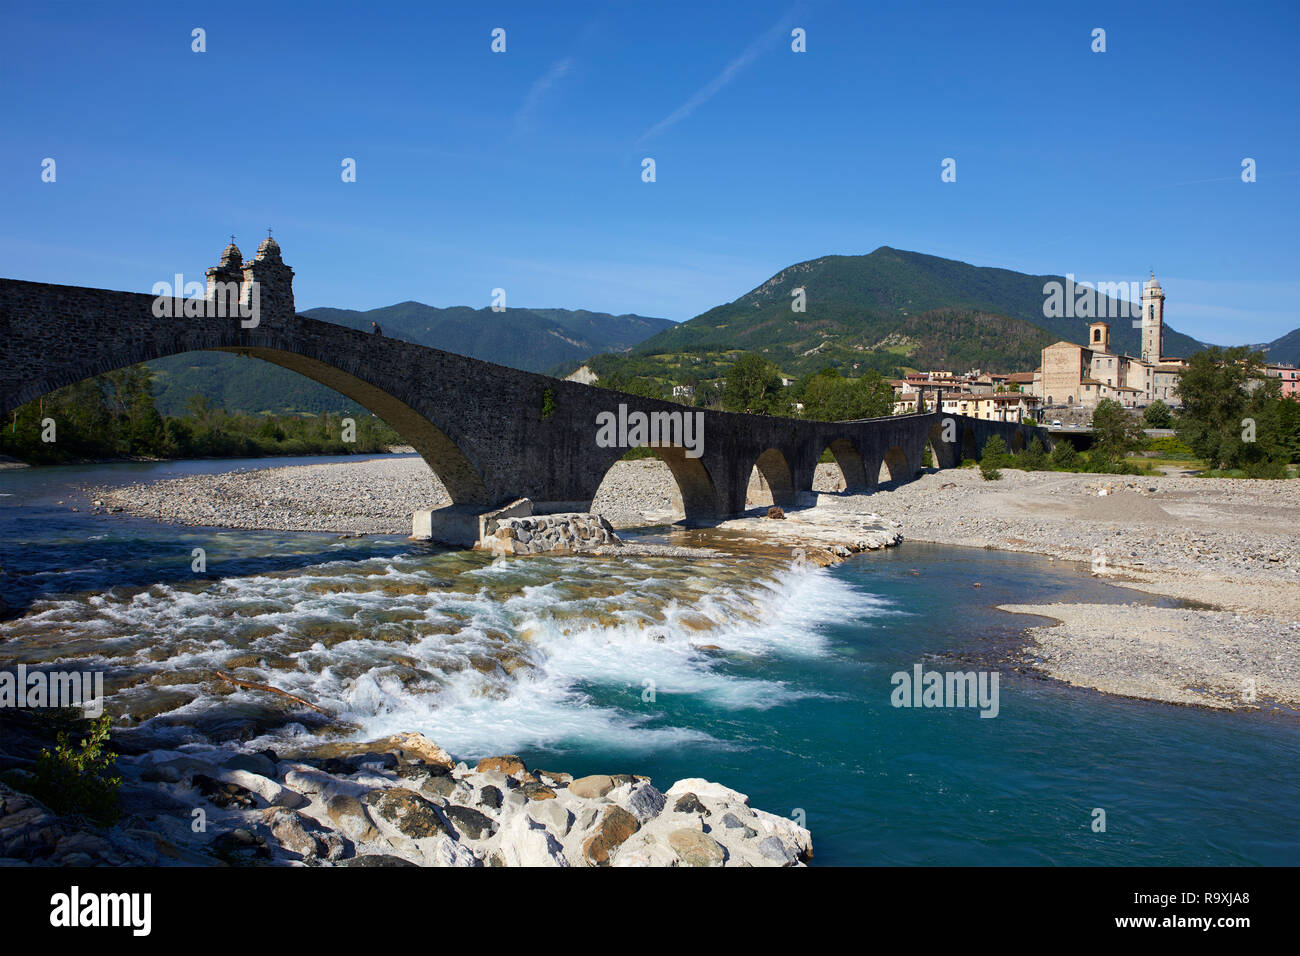 The old hunch-backed Bridge over the Trebbia river, Bobbio, Piacenza Province, Italy - Stock Image